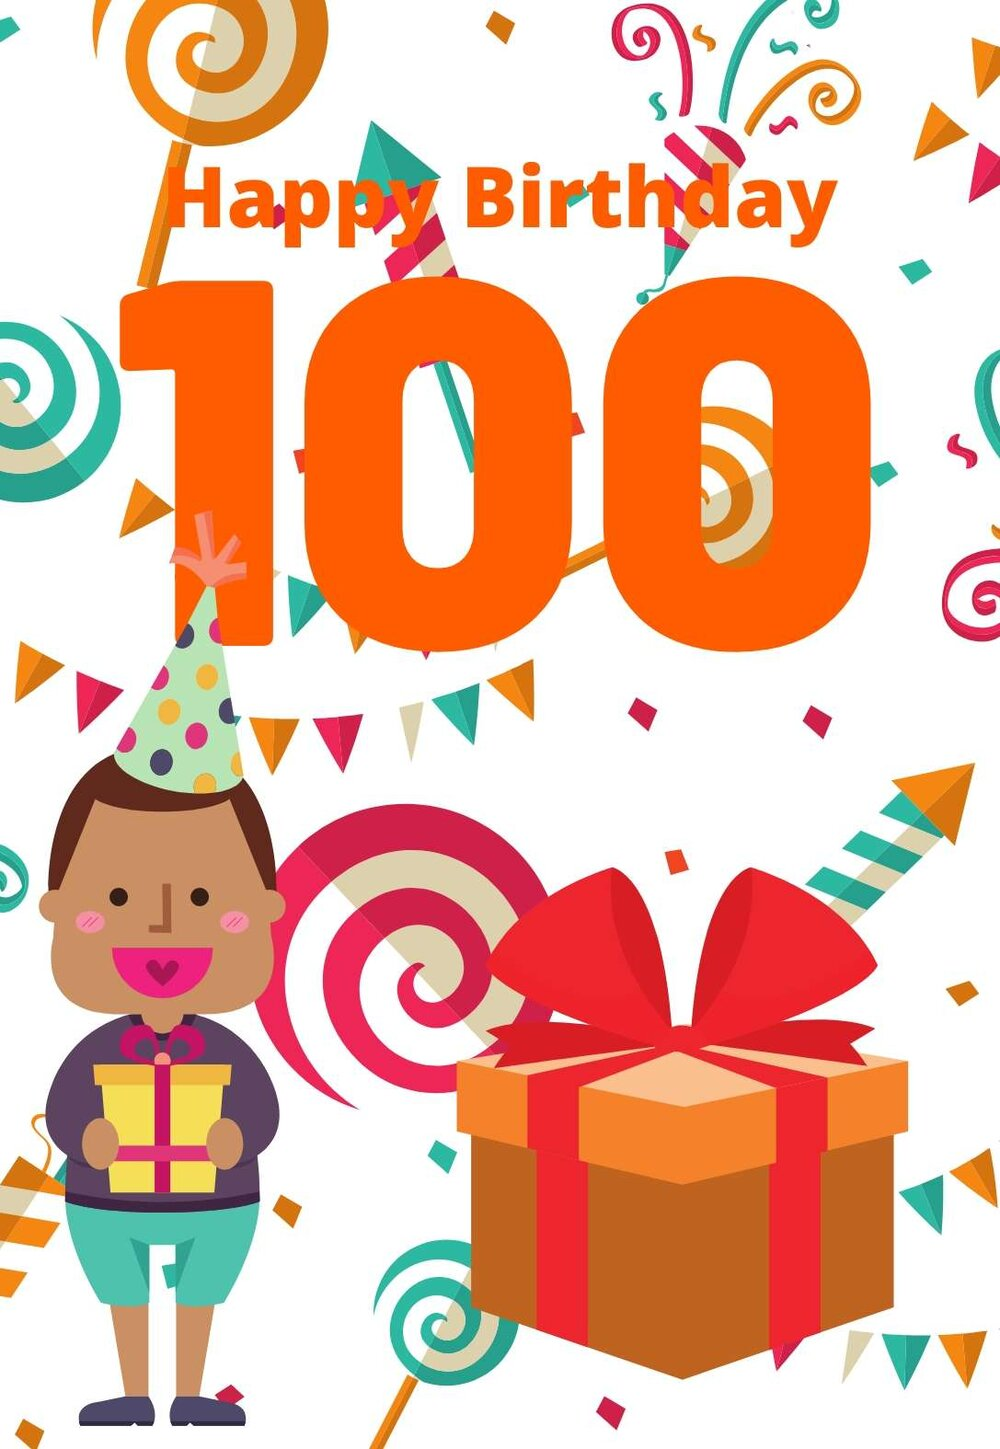 Stunning Printable Birthday Cards For 100 Years Olds Free Printbirthday Cards